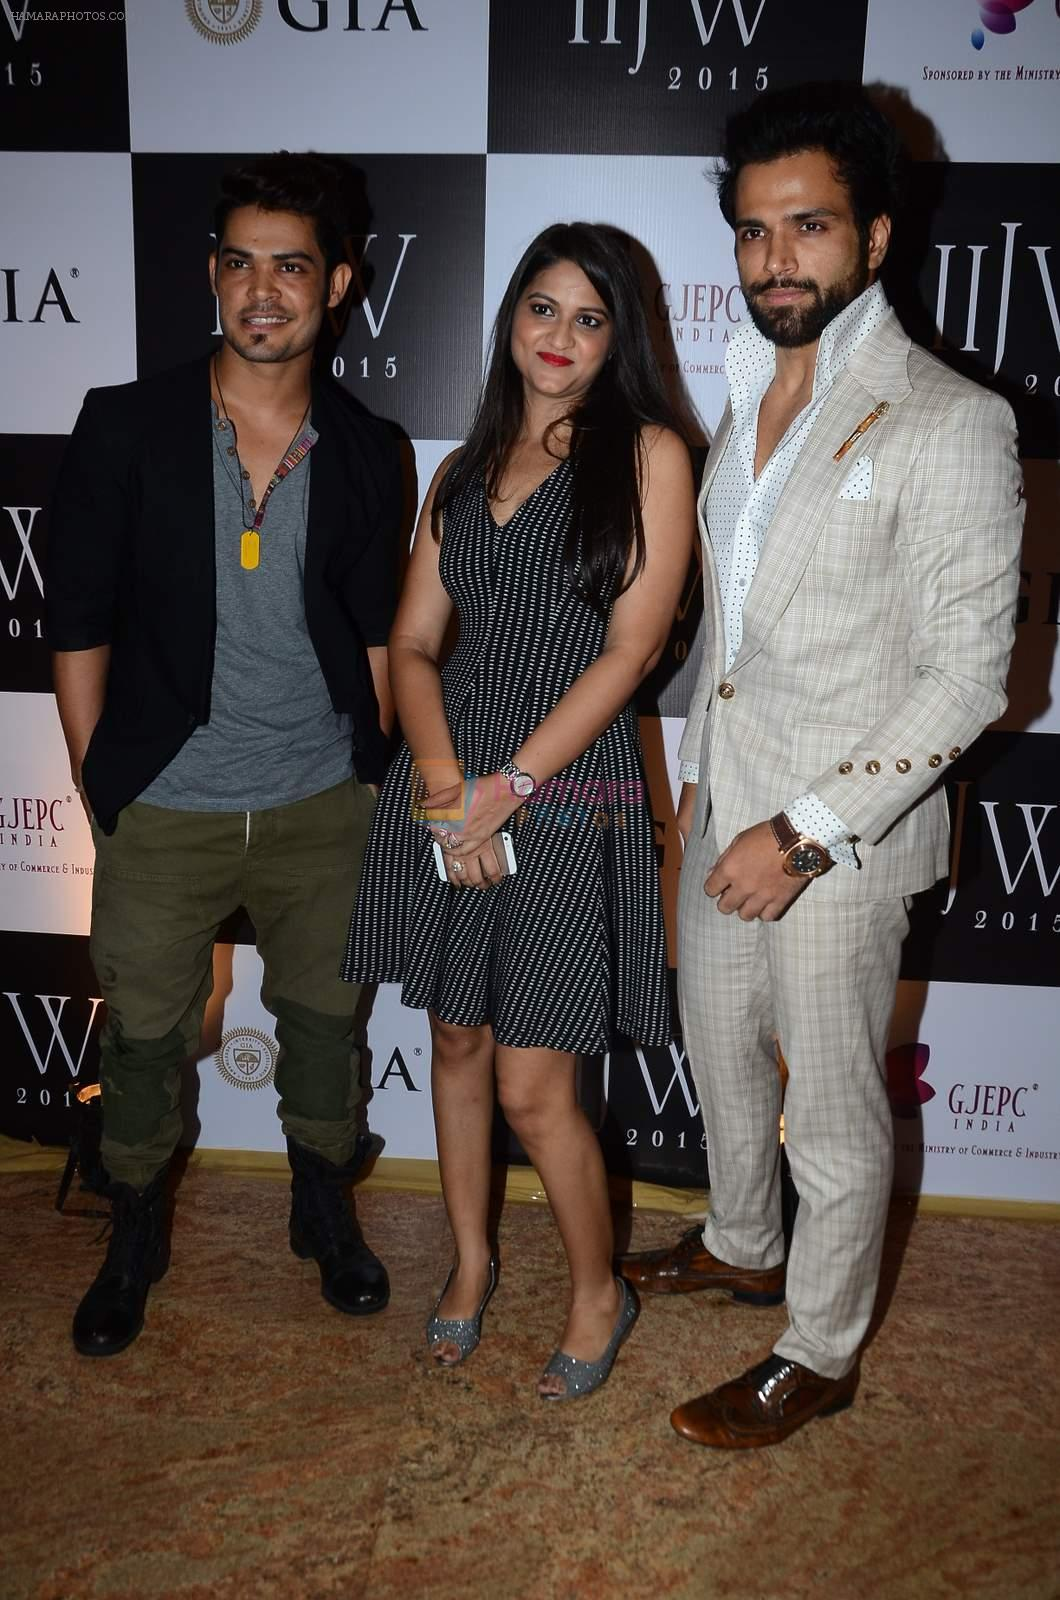 Rithvik Dhanjani on Day 3 of IIJW 2015 on 5th Aug 2015